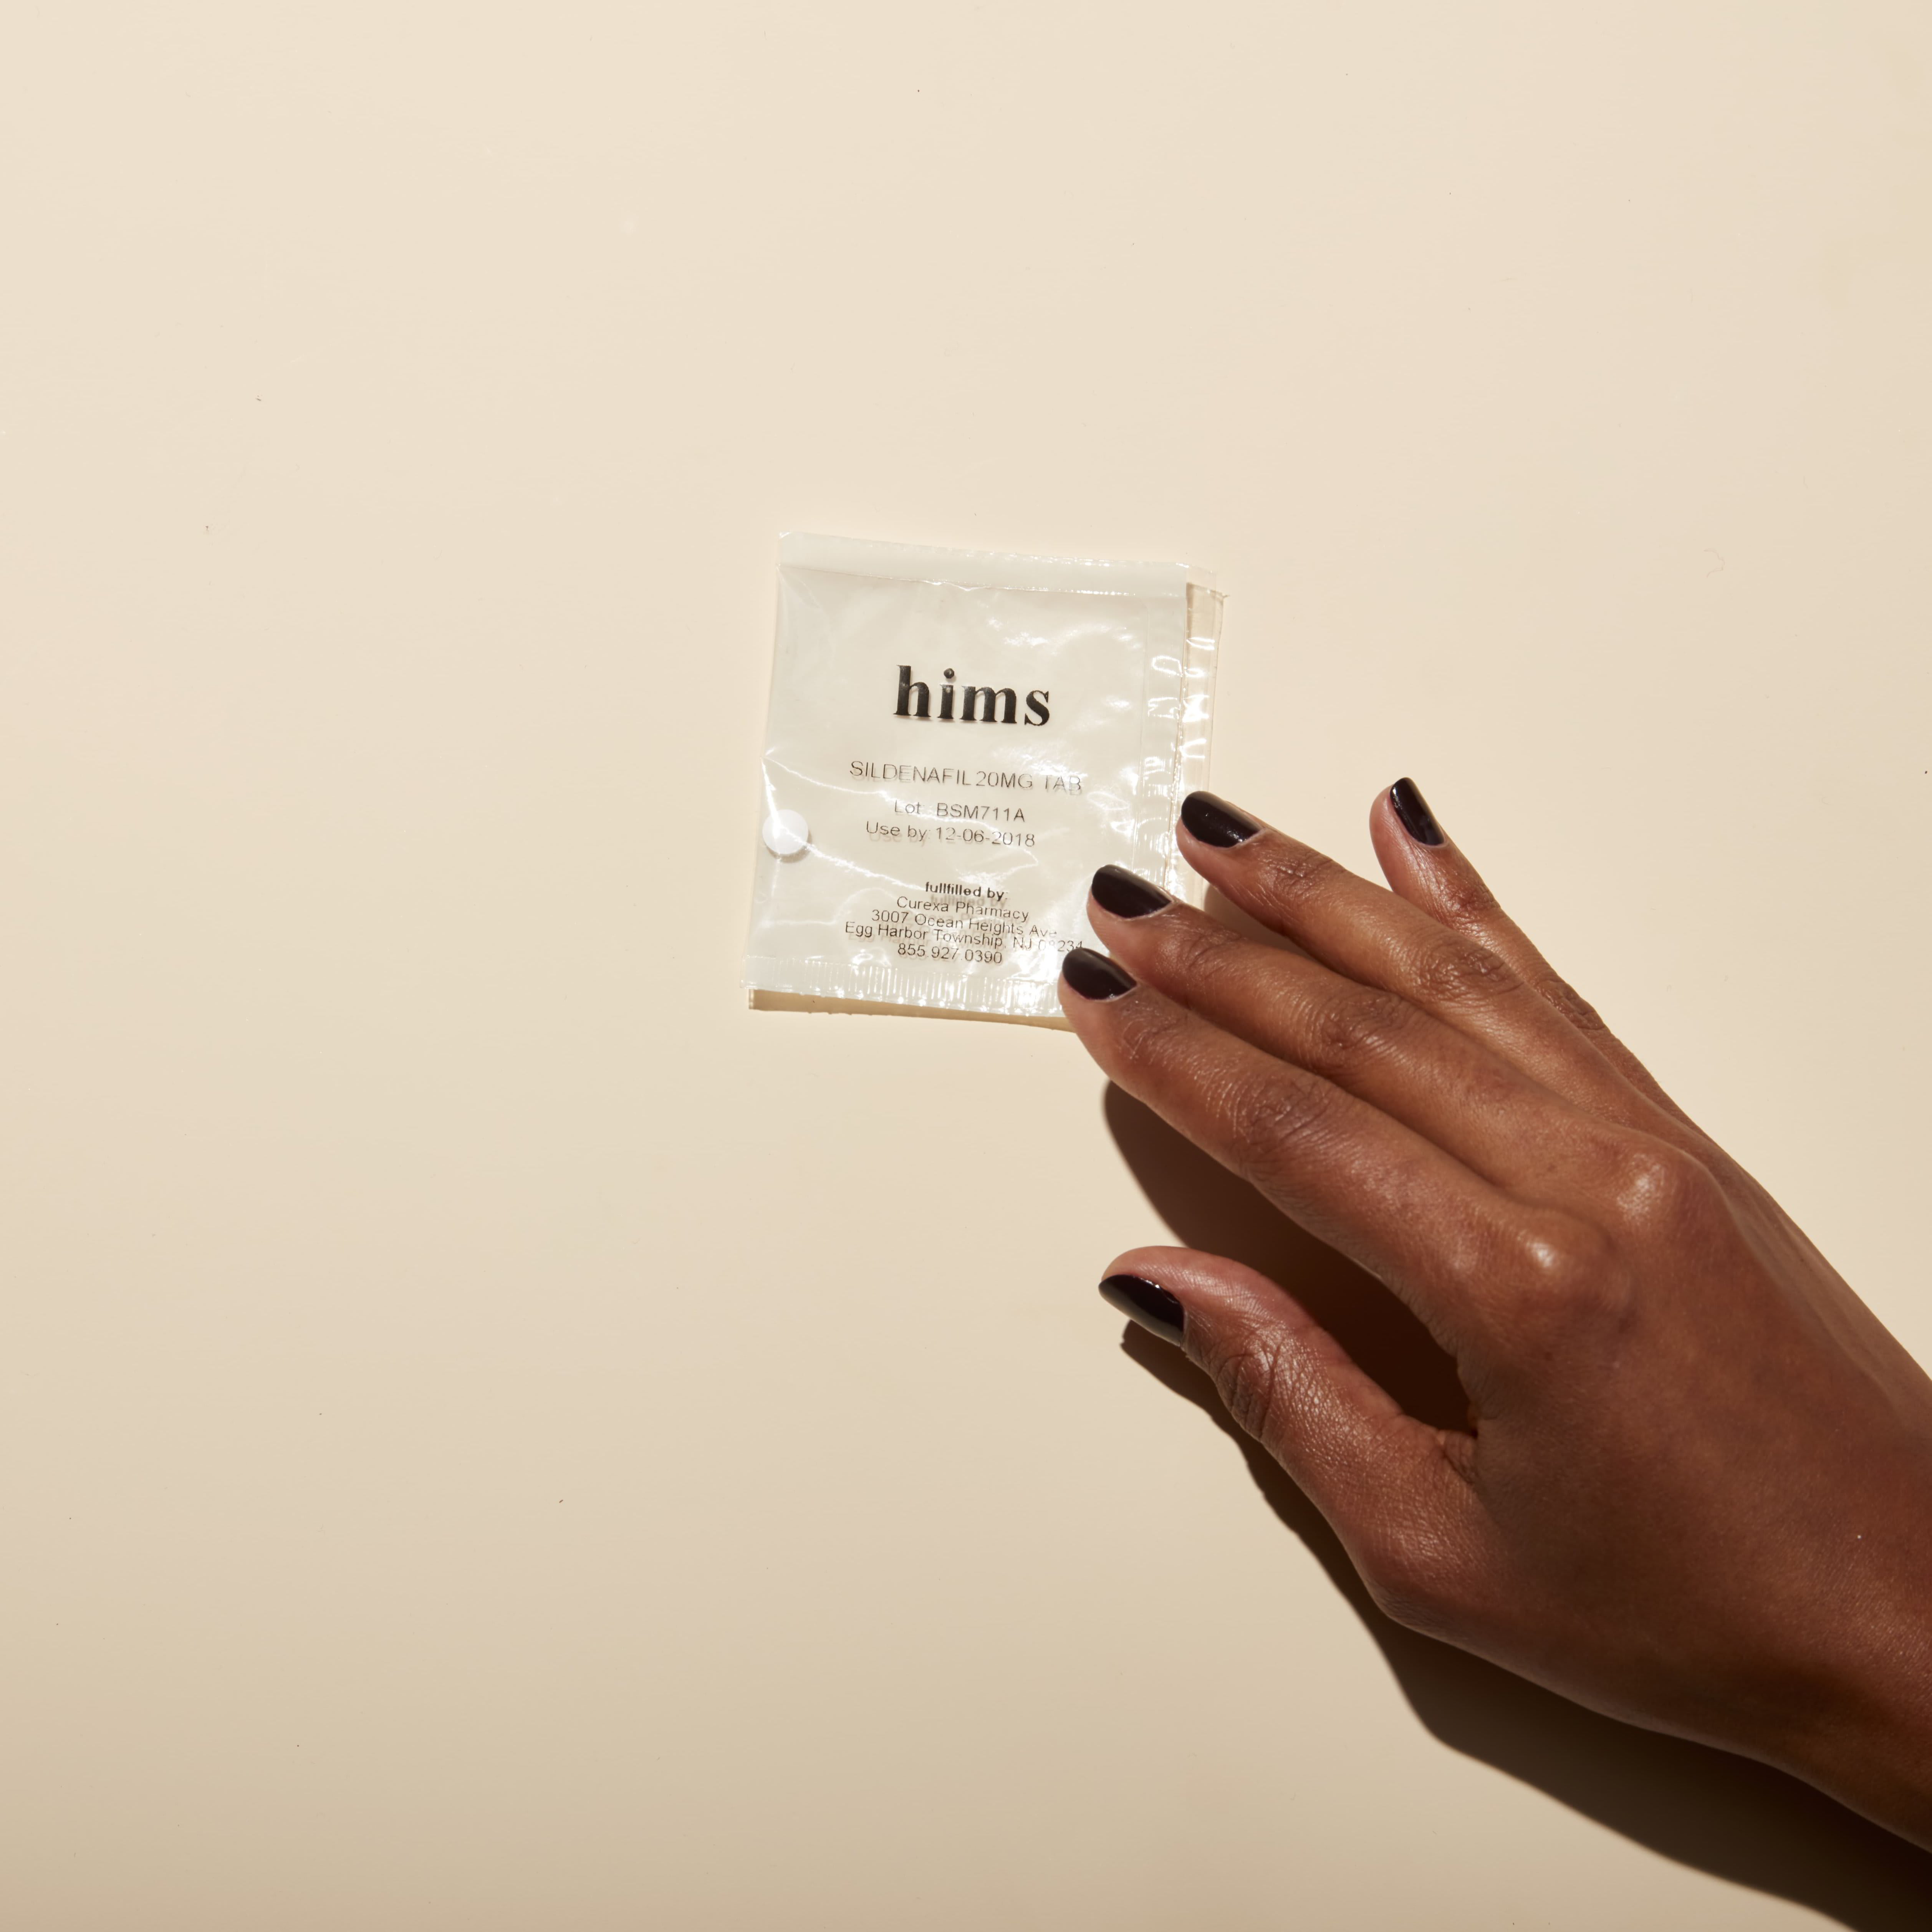 A hand holding a package of Hims Sildenafil medication